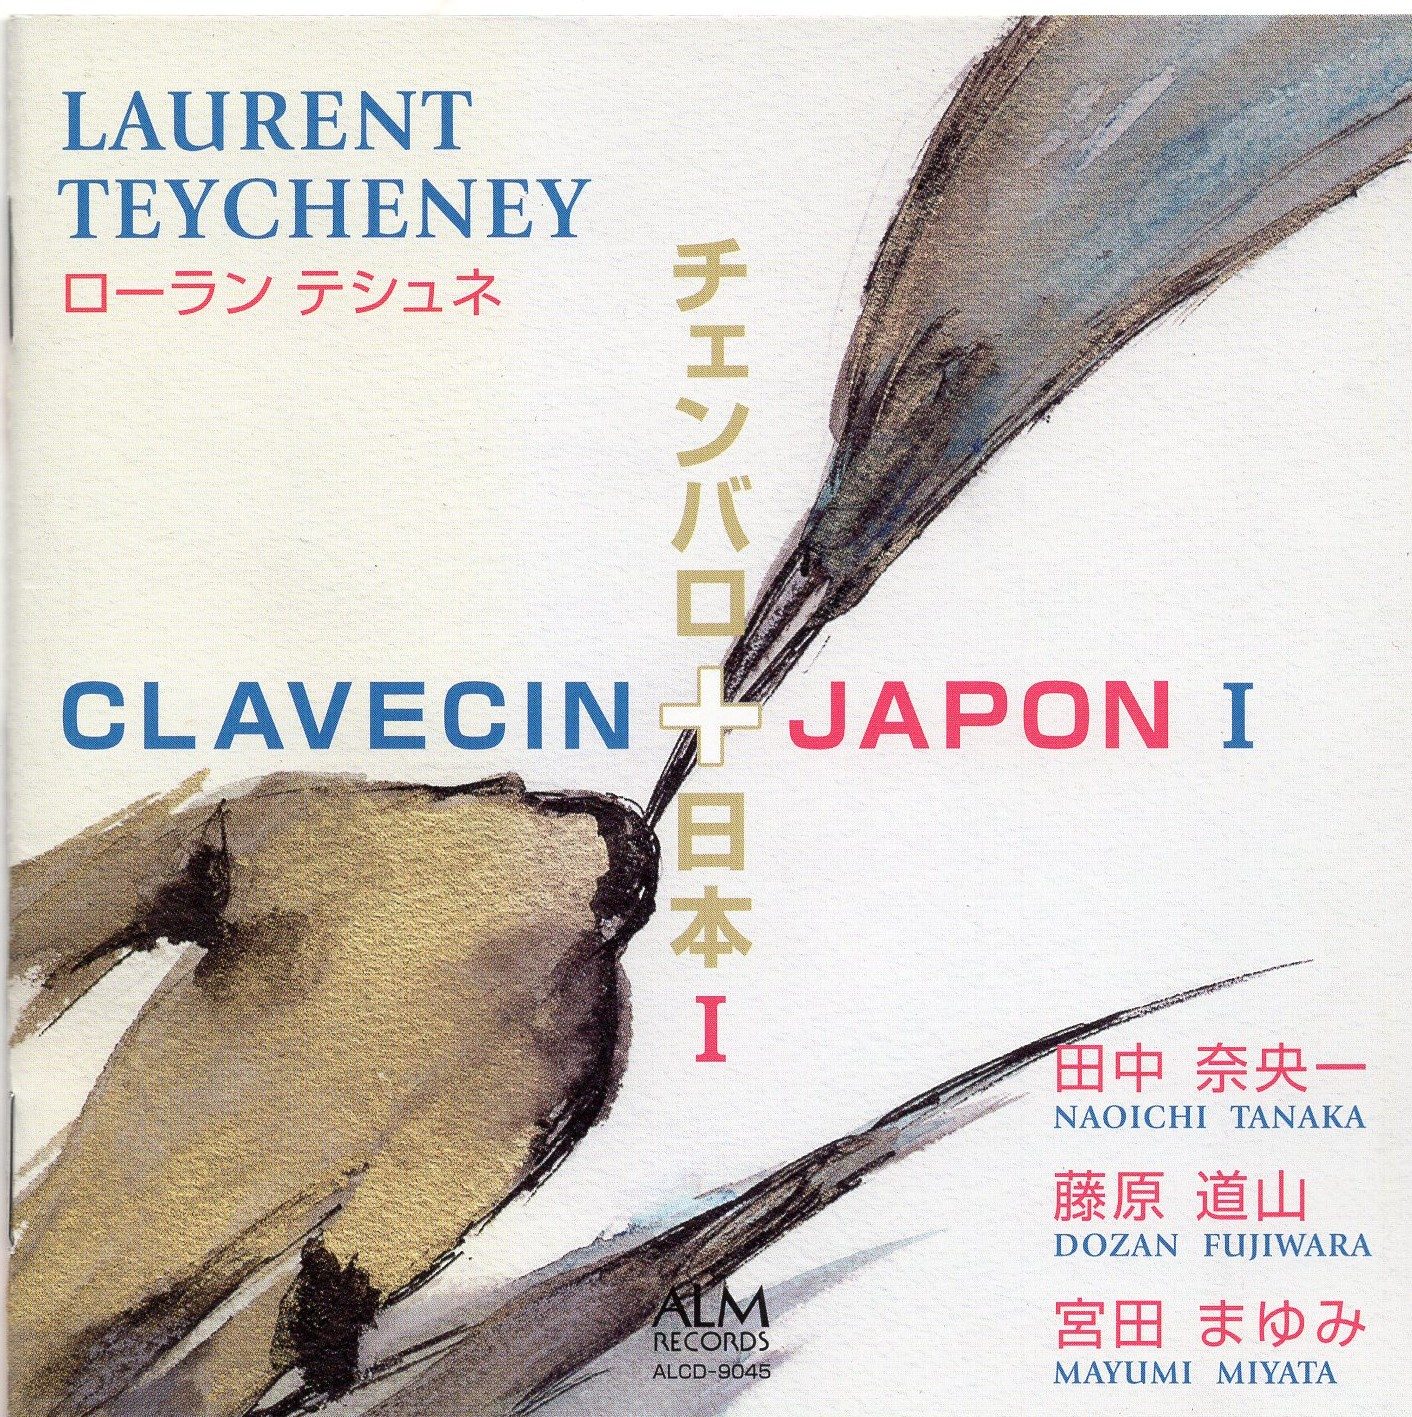 """Clavecin+Japon I"" Laurent Teycheney"